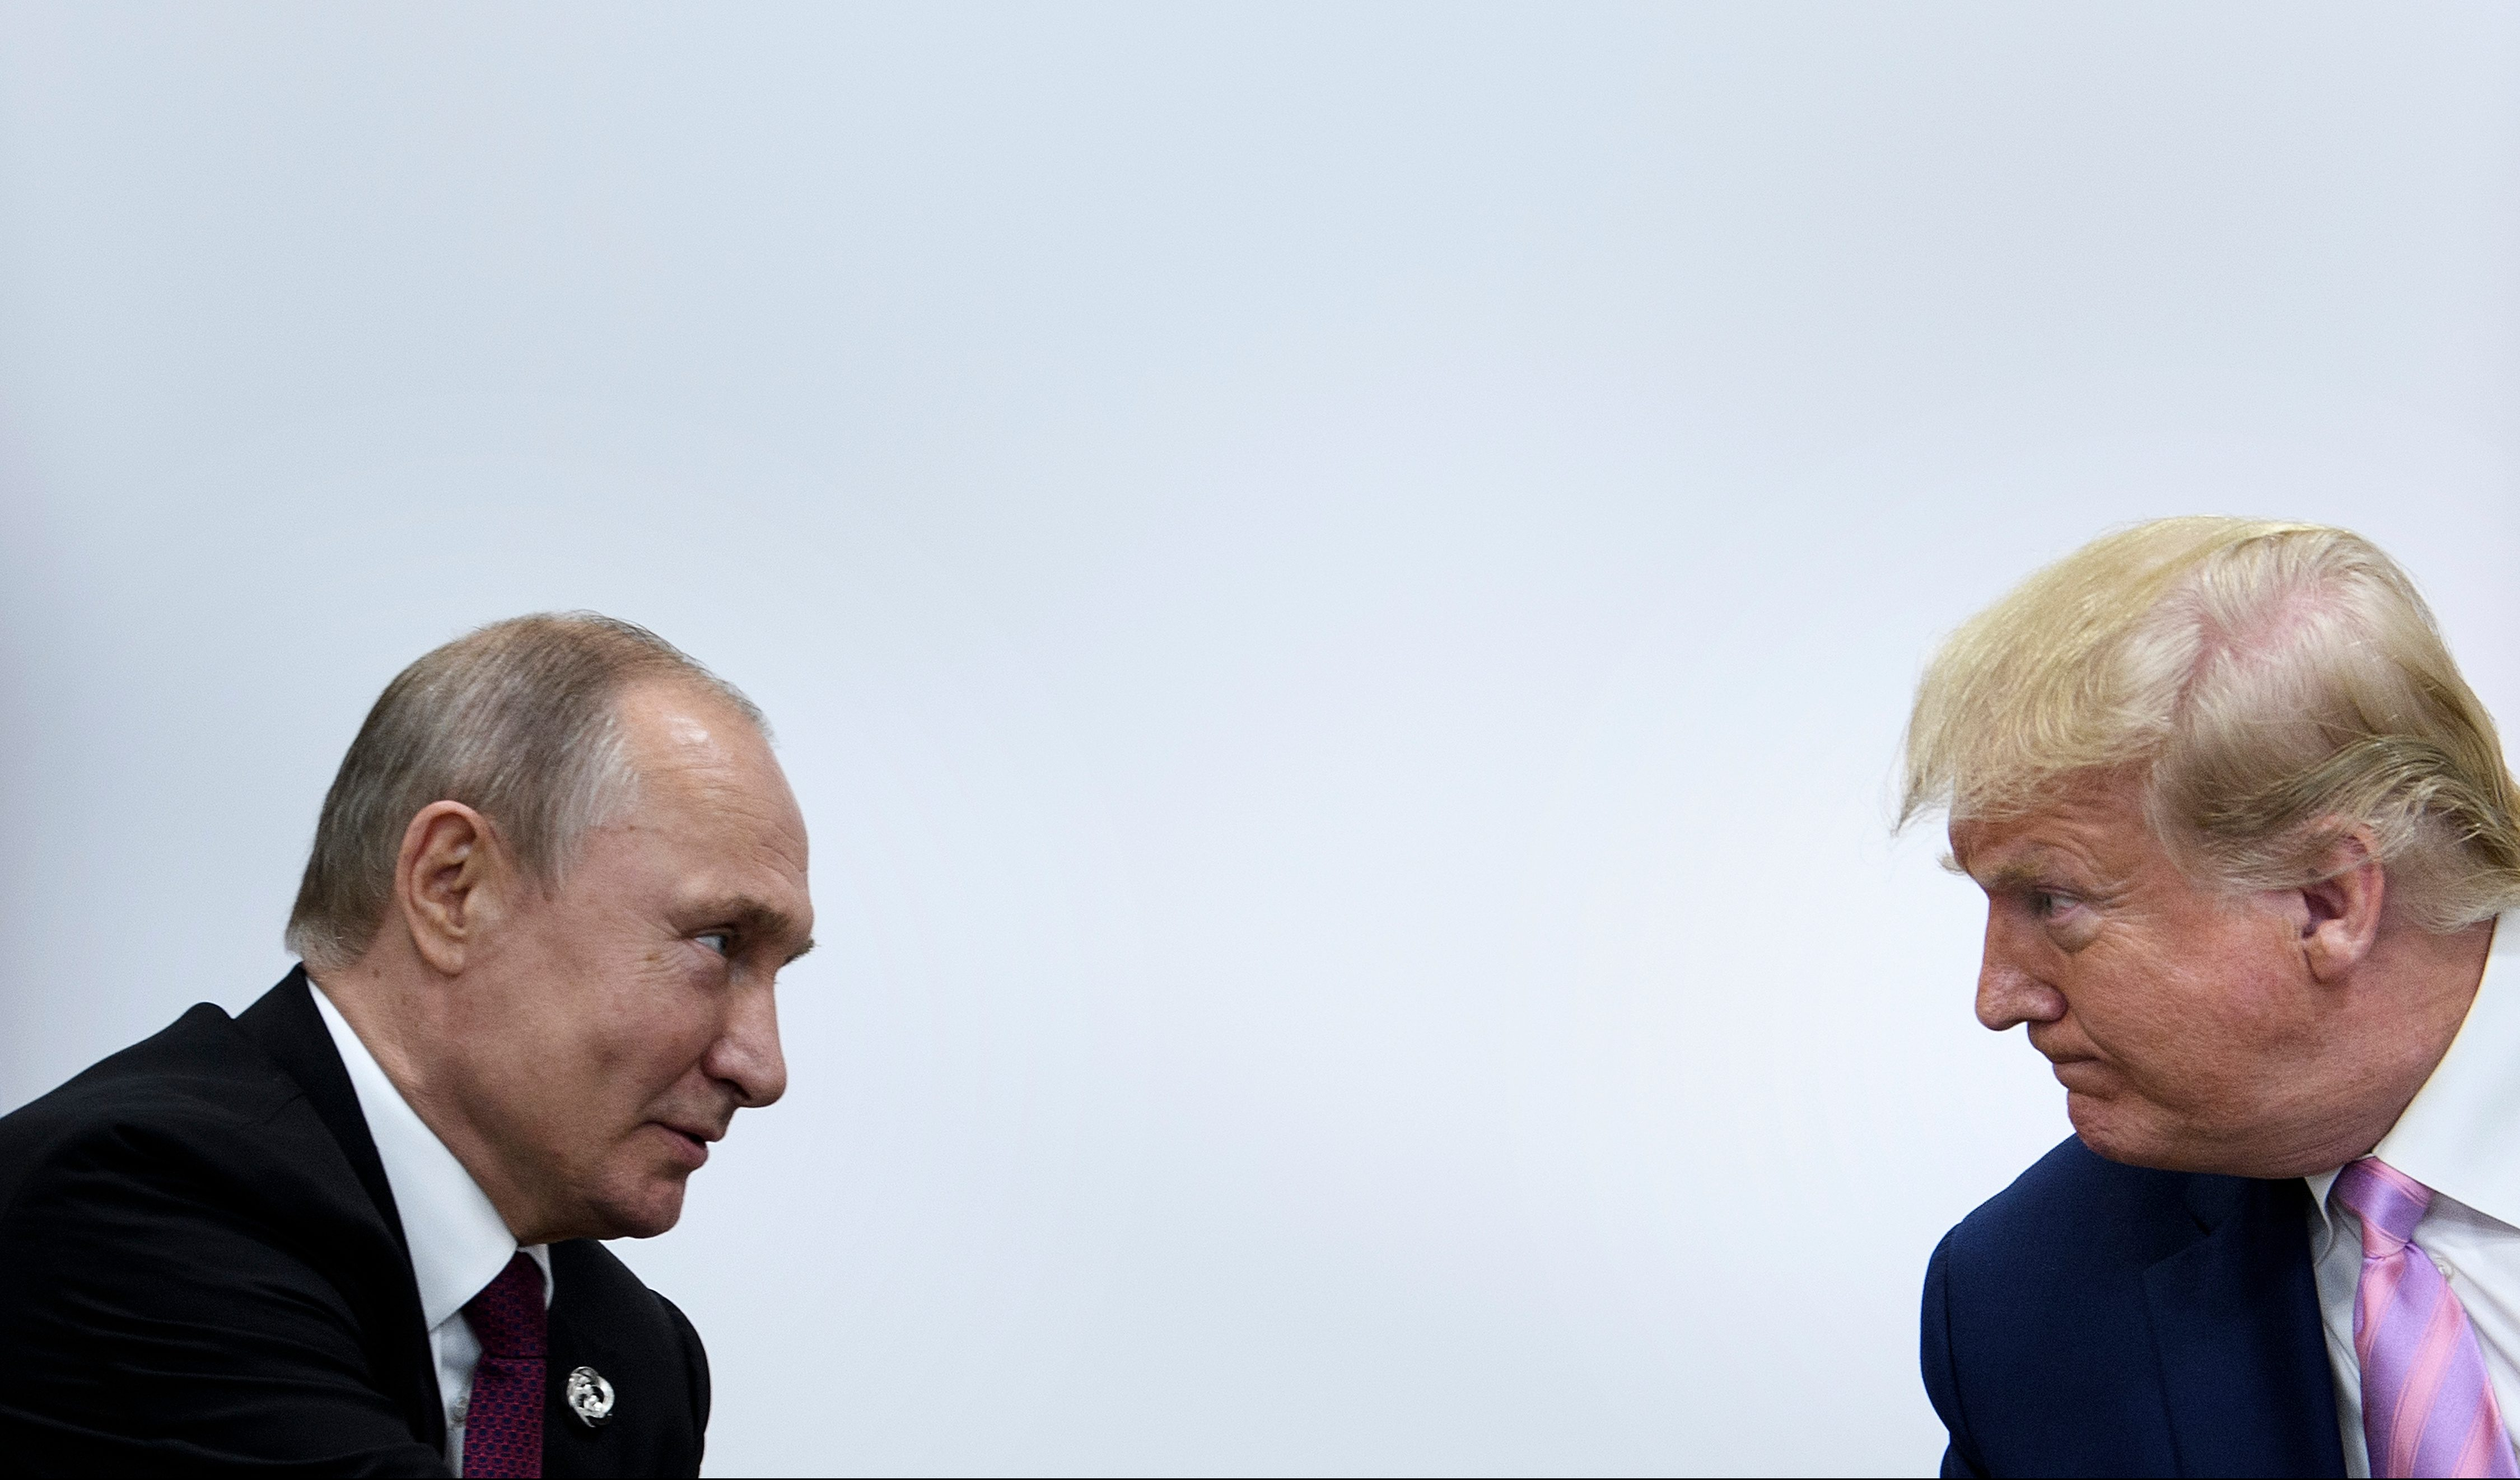 President Donald Trump attends a meeting with Russia's President Vladimir Putin during the G20 summit in Osaka on June 28, 2019.